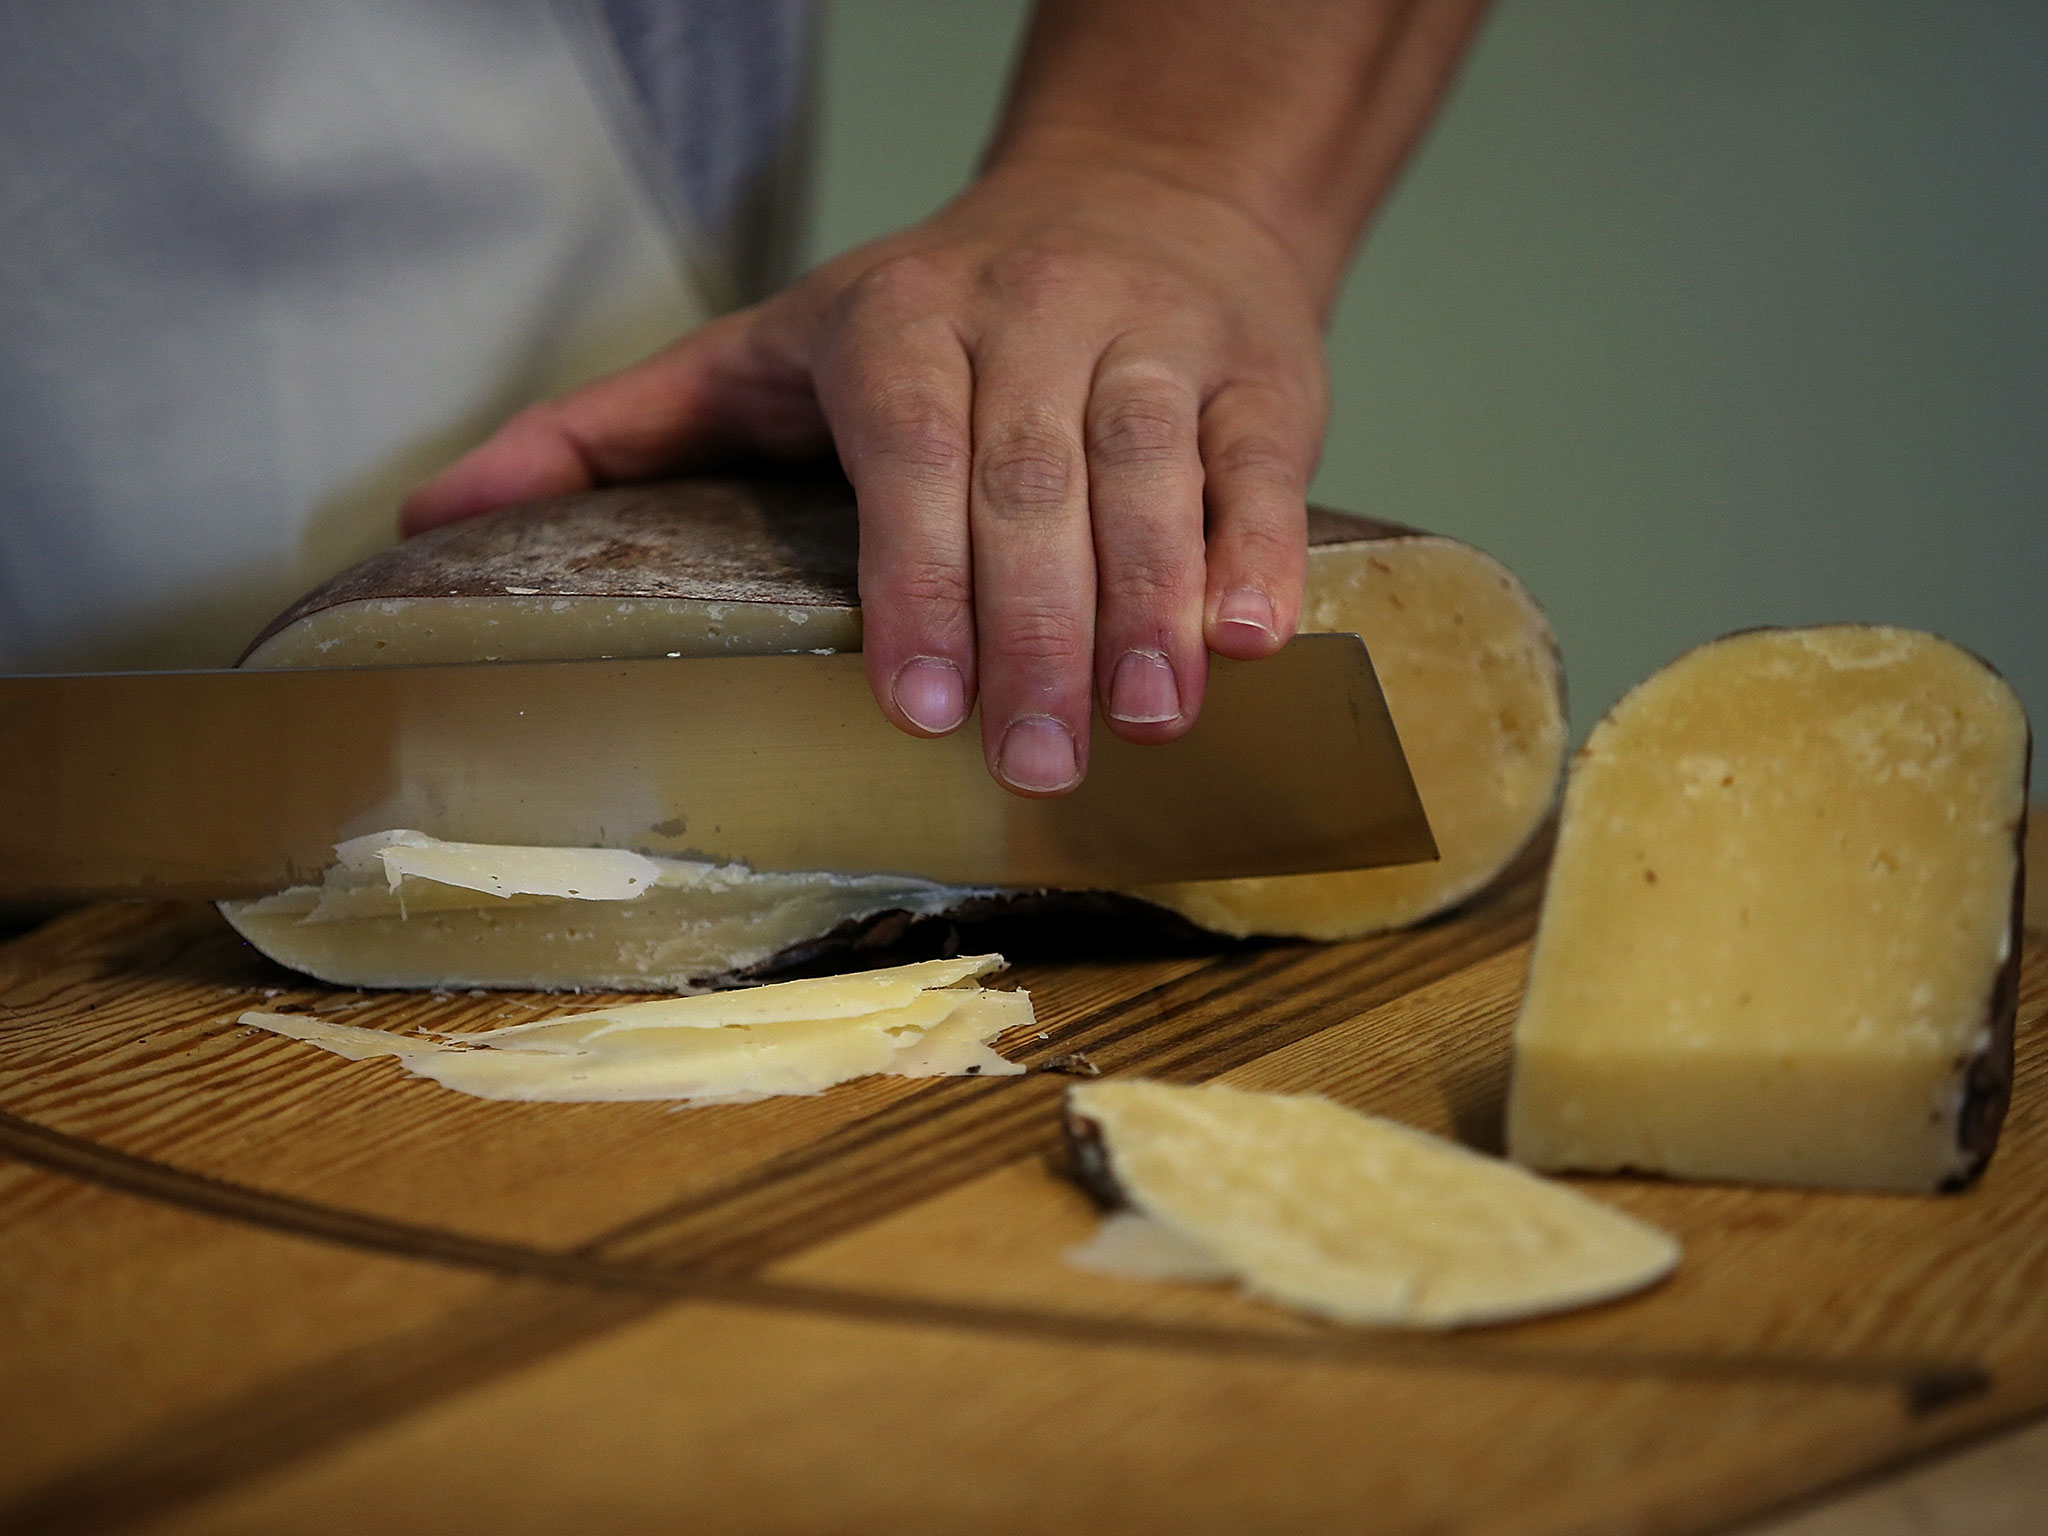 Cheese as addicted as hard drugs, study finds photo